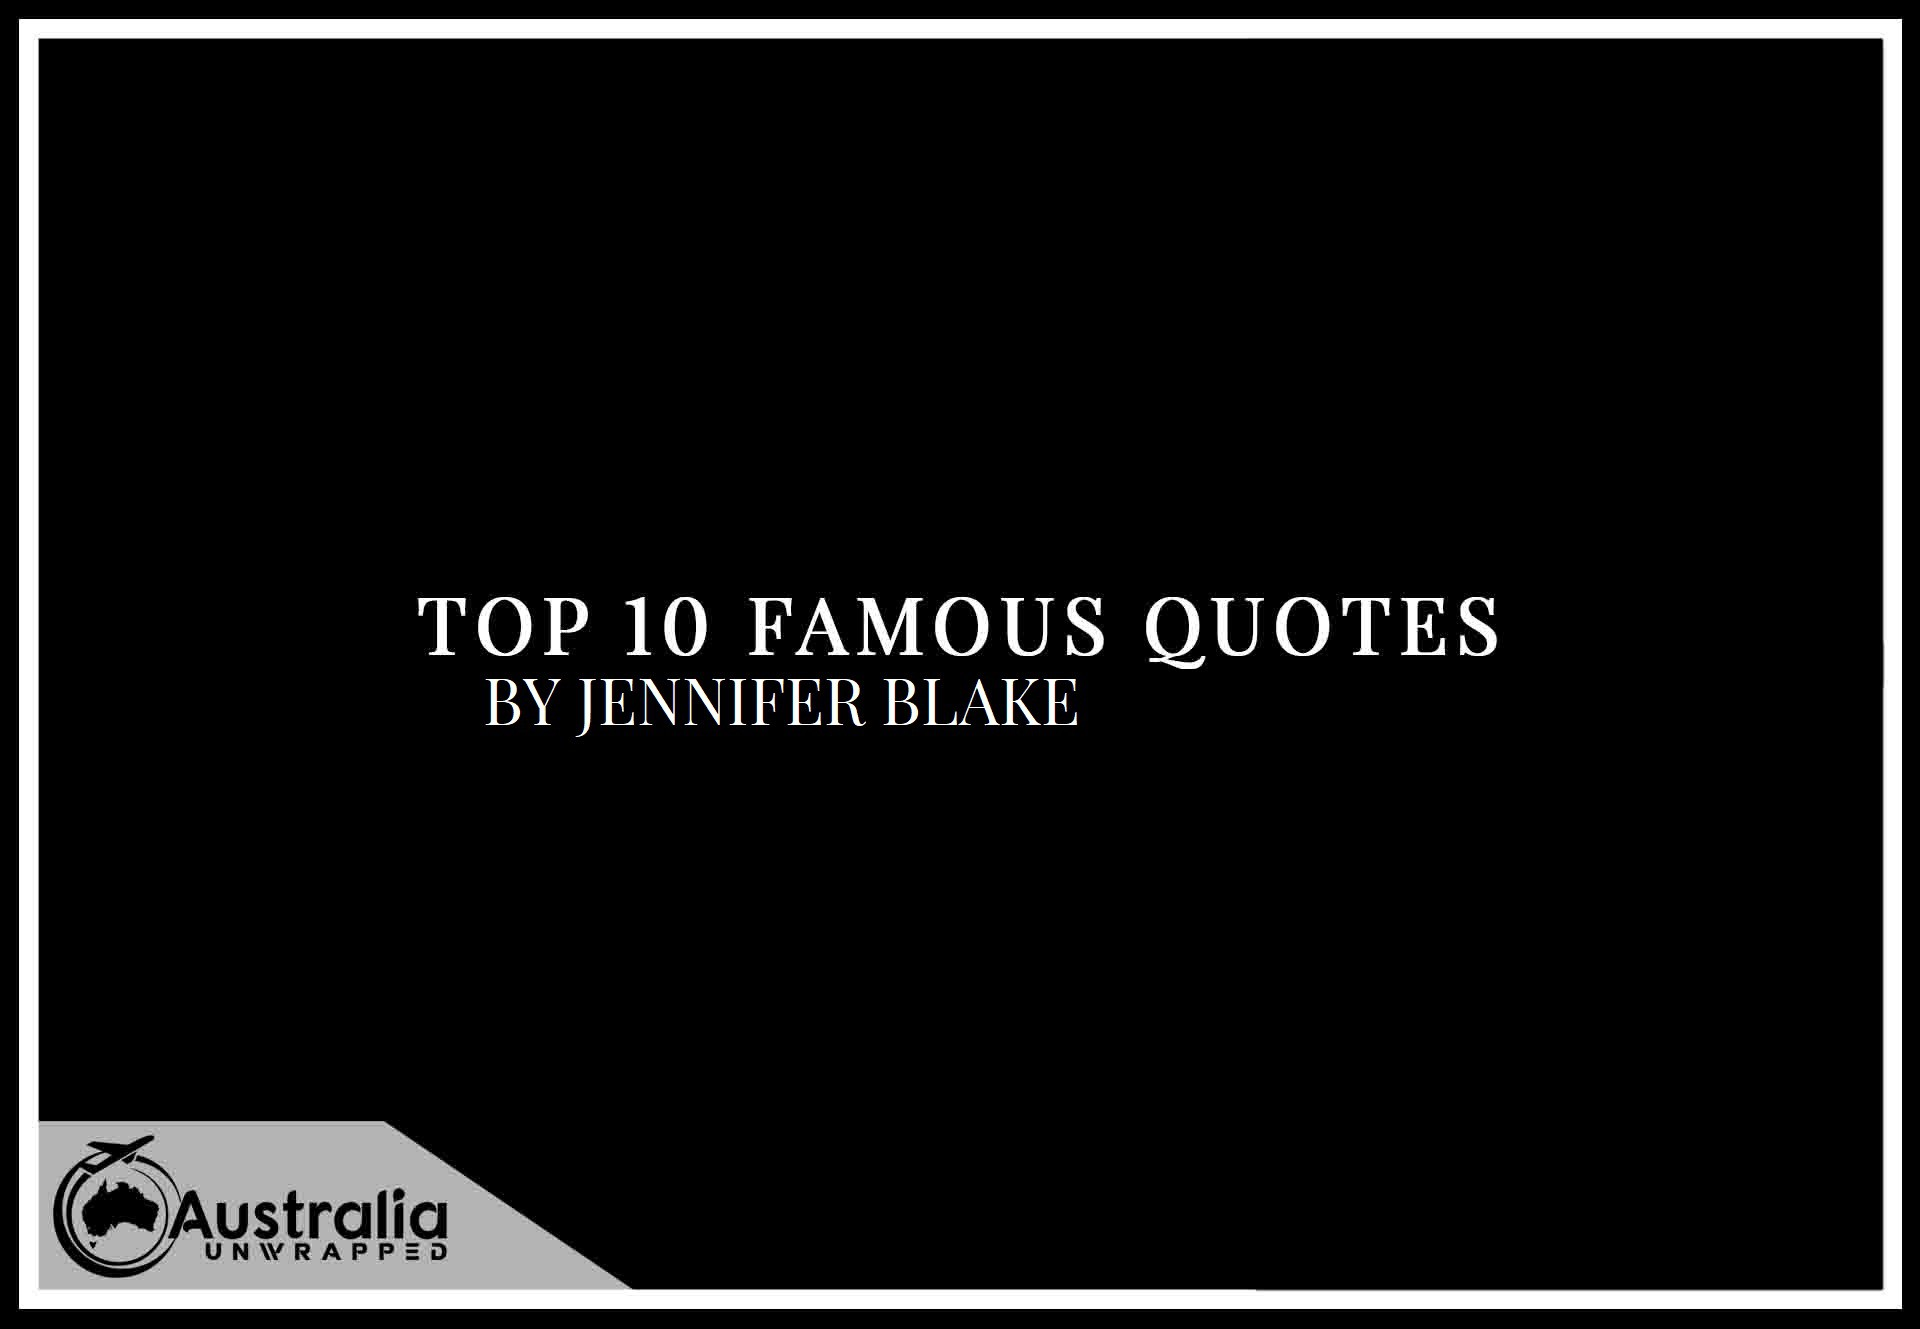 Top 10 Famous Quotes by Author Jennifer Blake